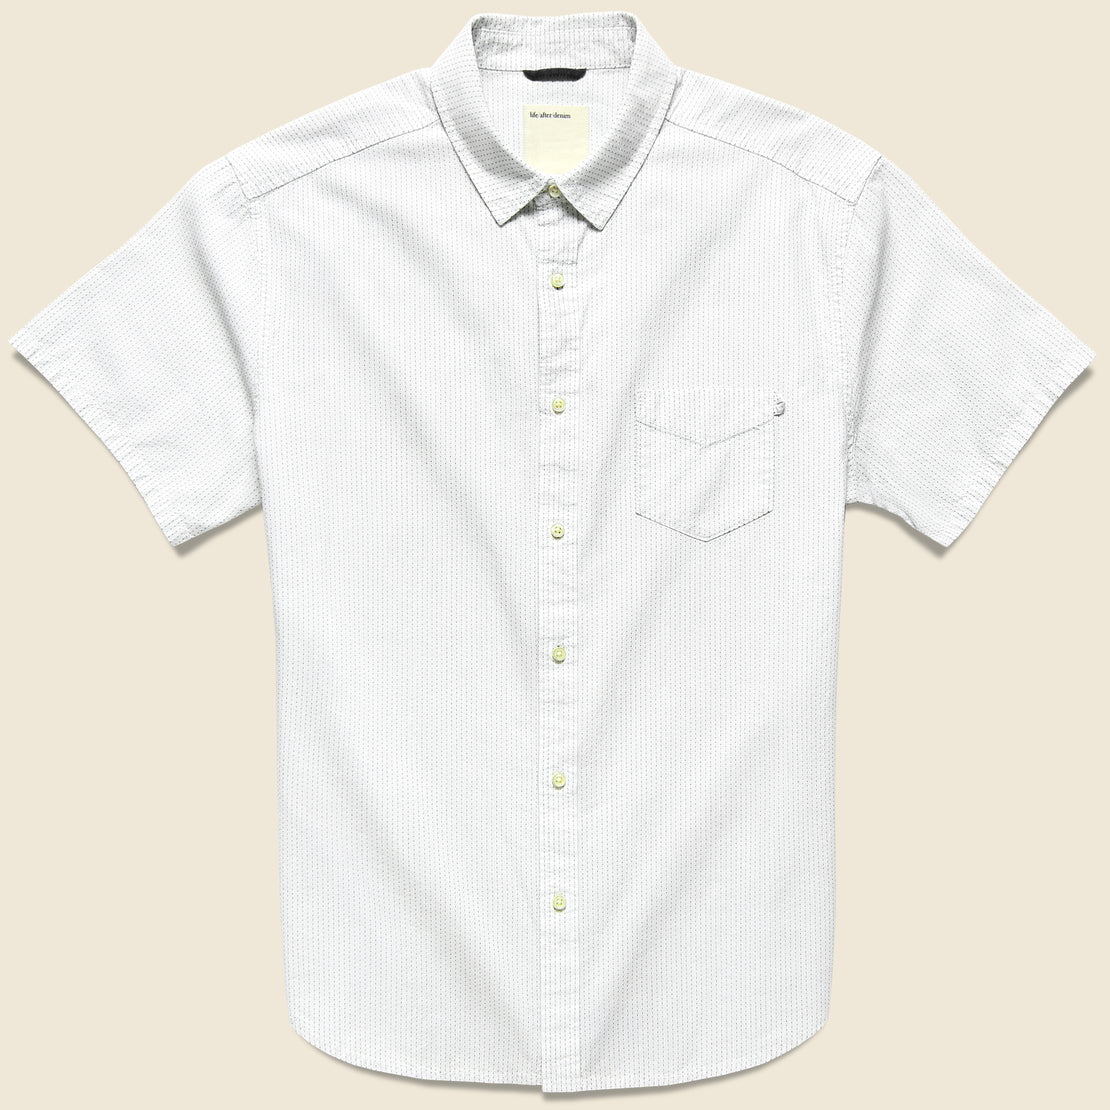 Life After Denim Mainland Shirt - White